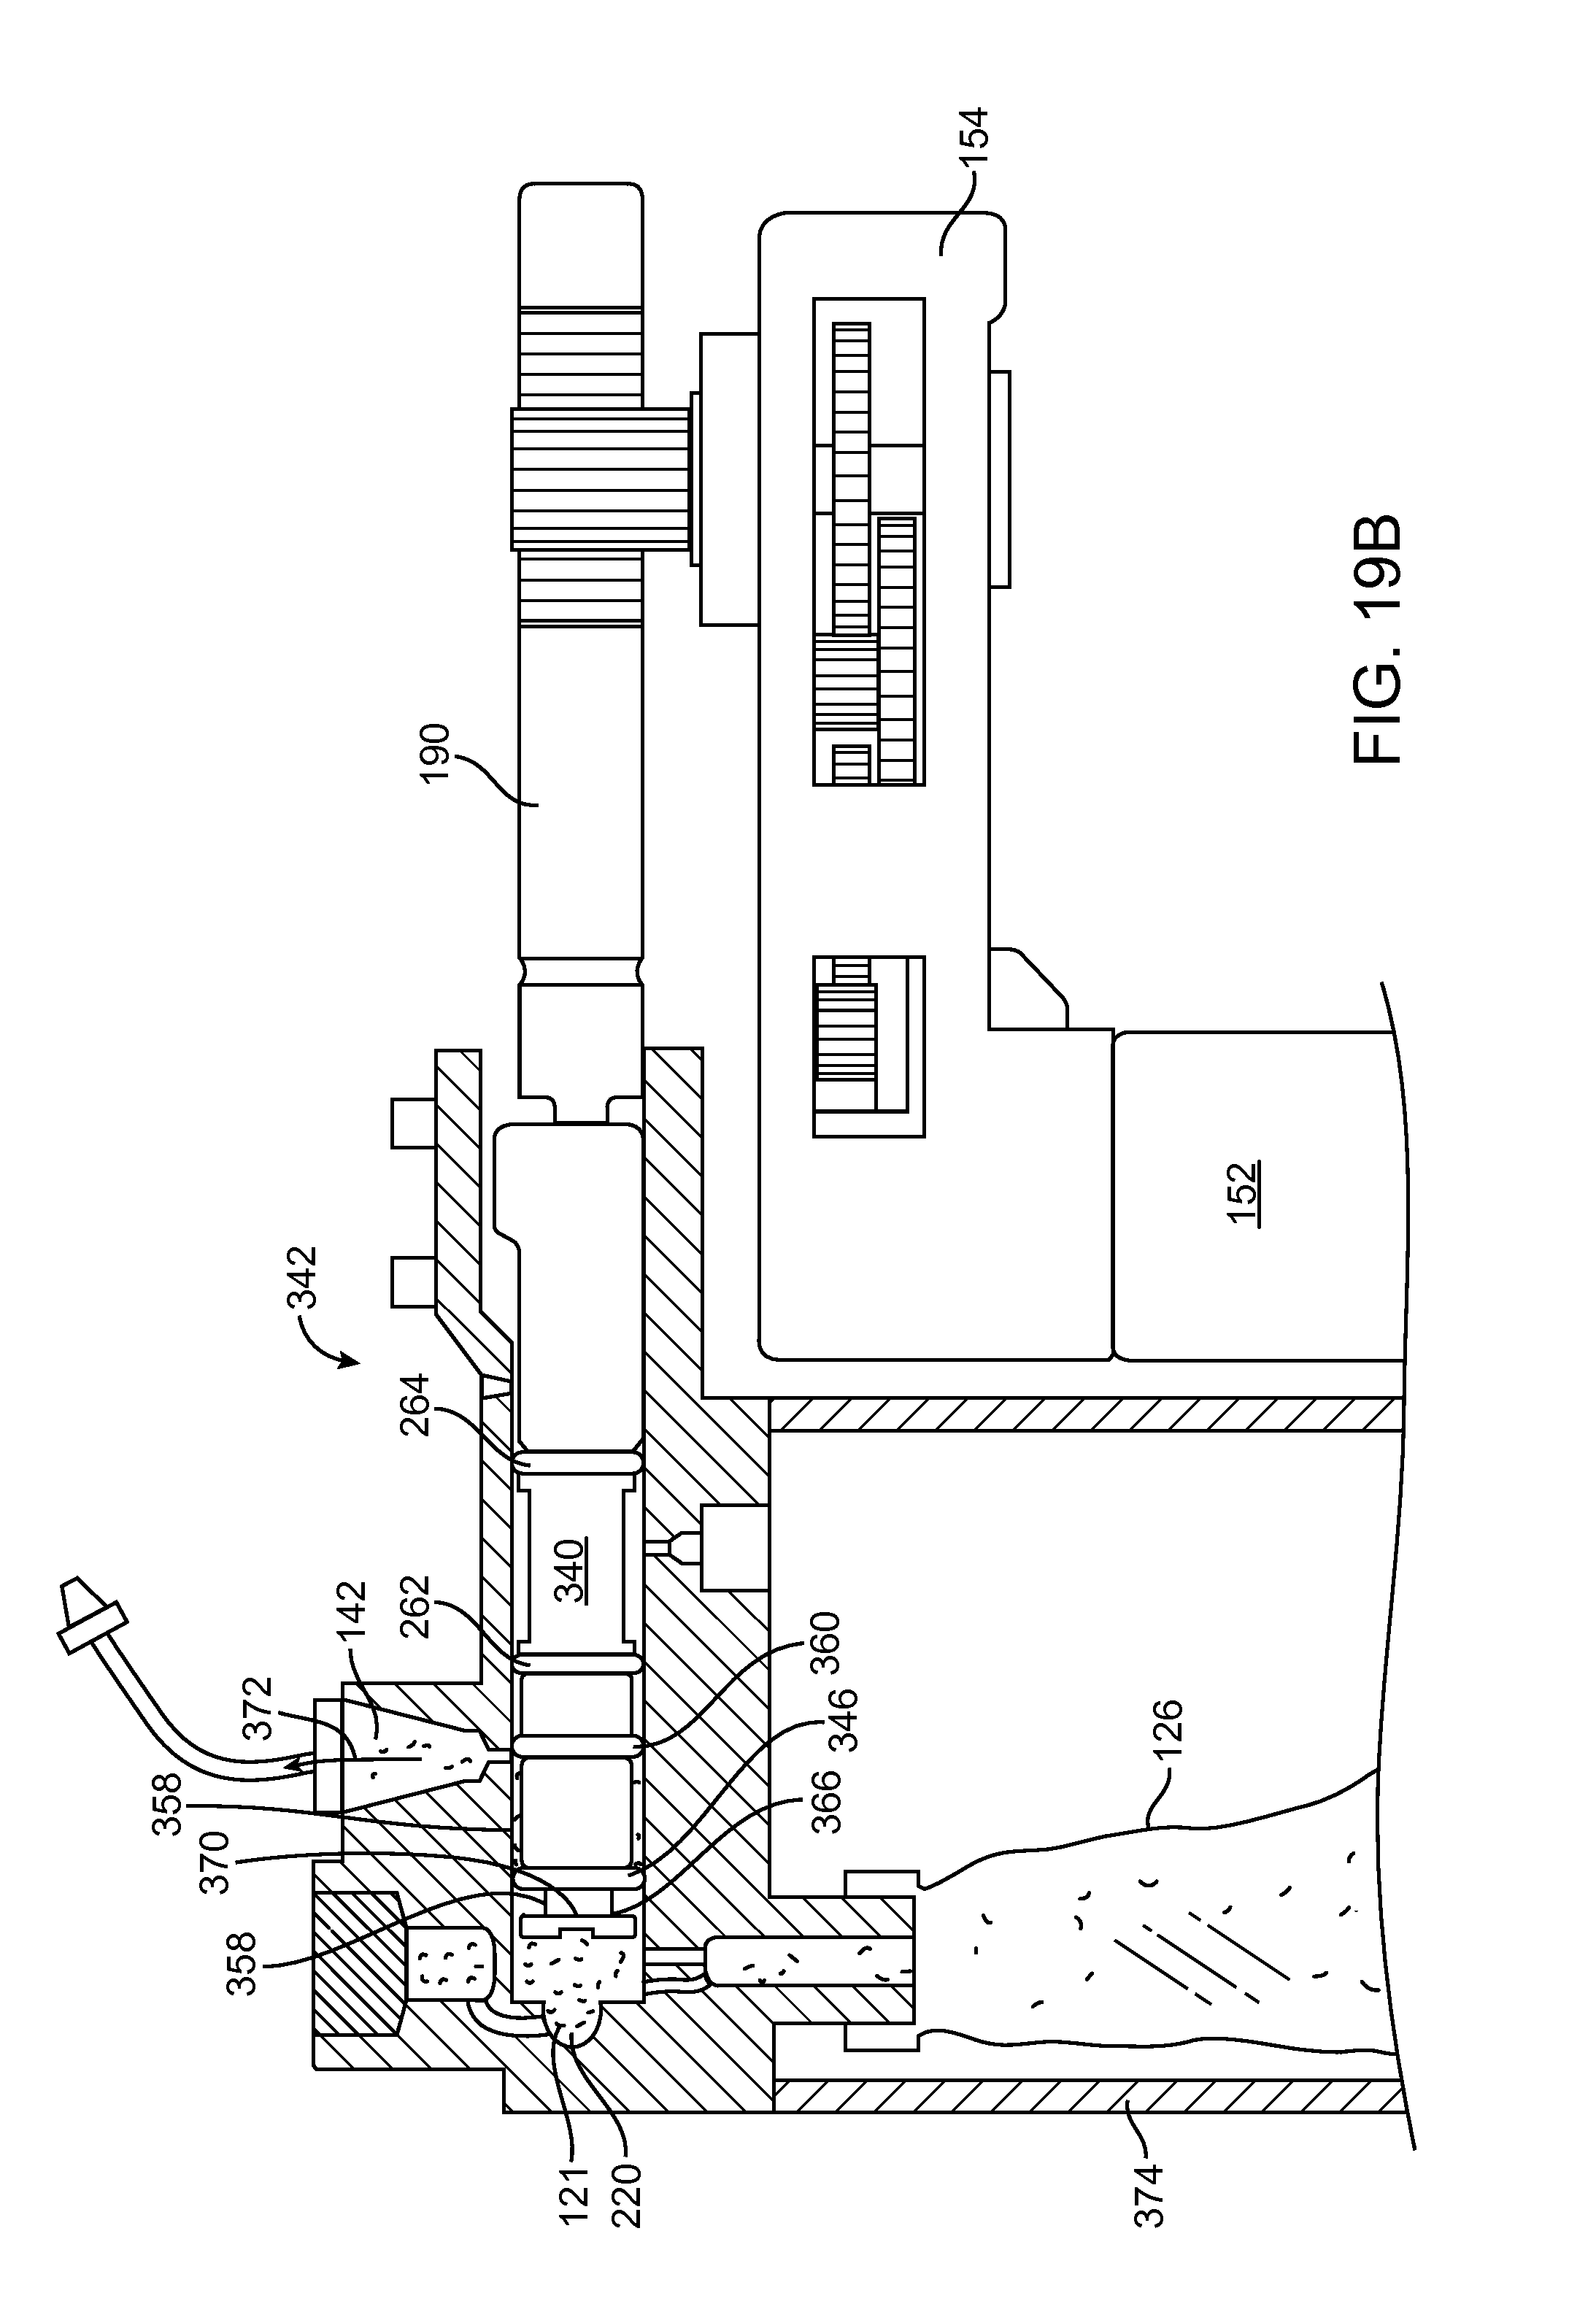 us8926561b2 infusion pump system with disposable cartridge having